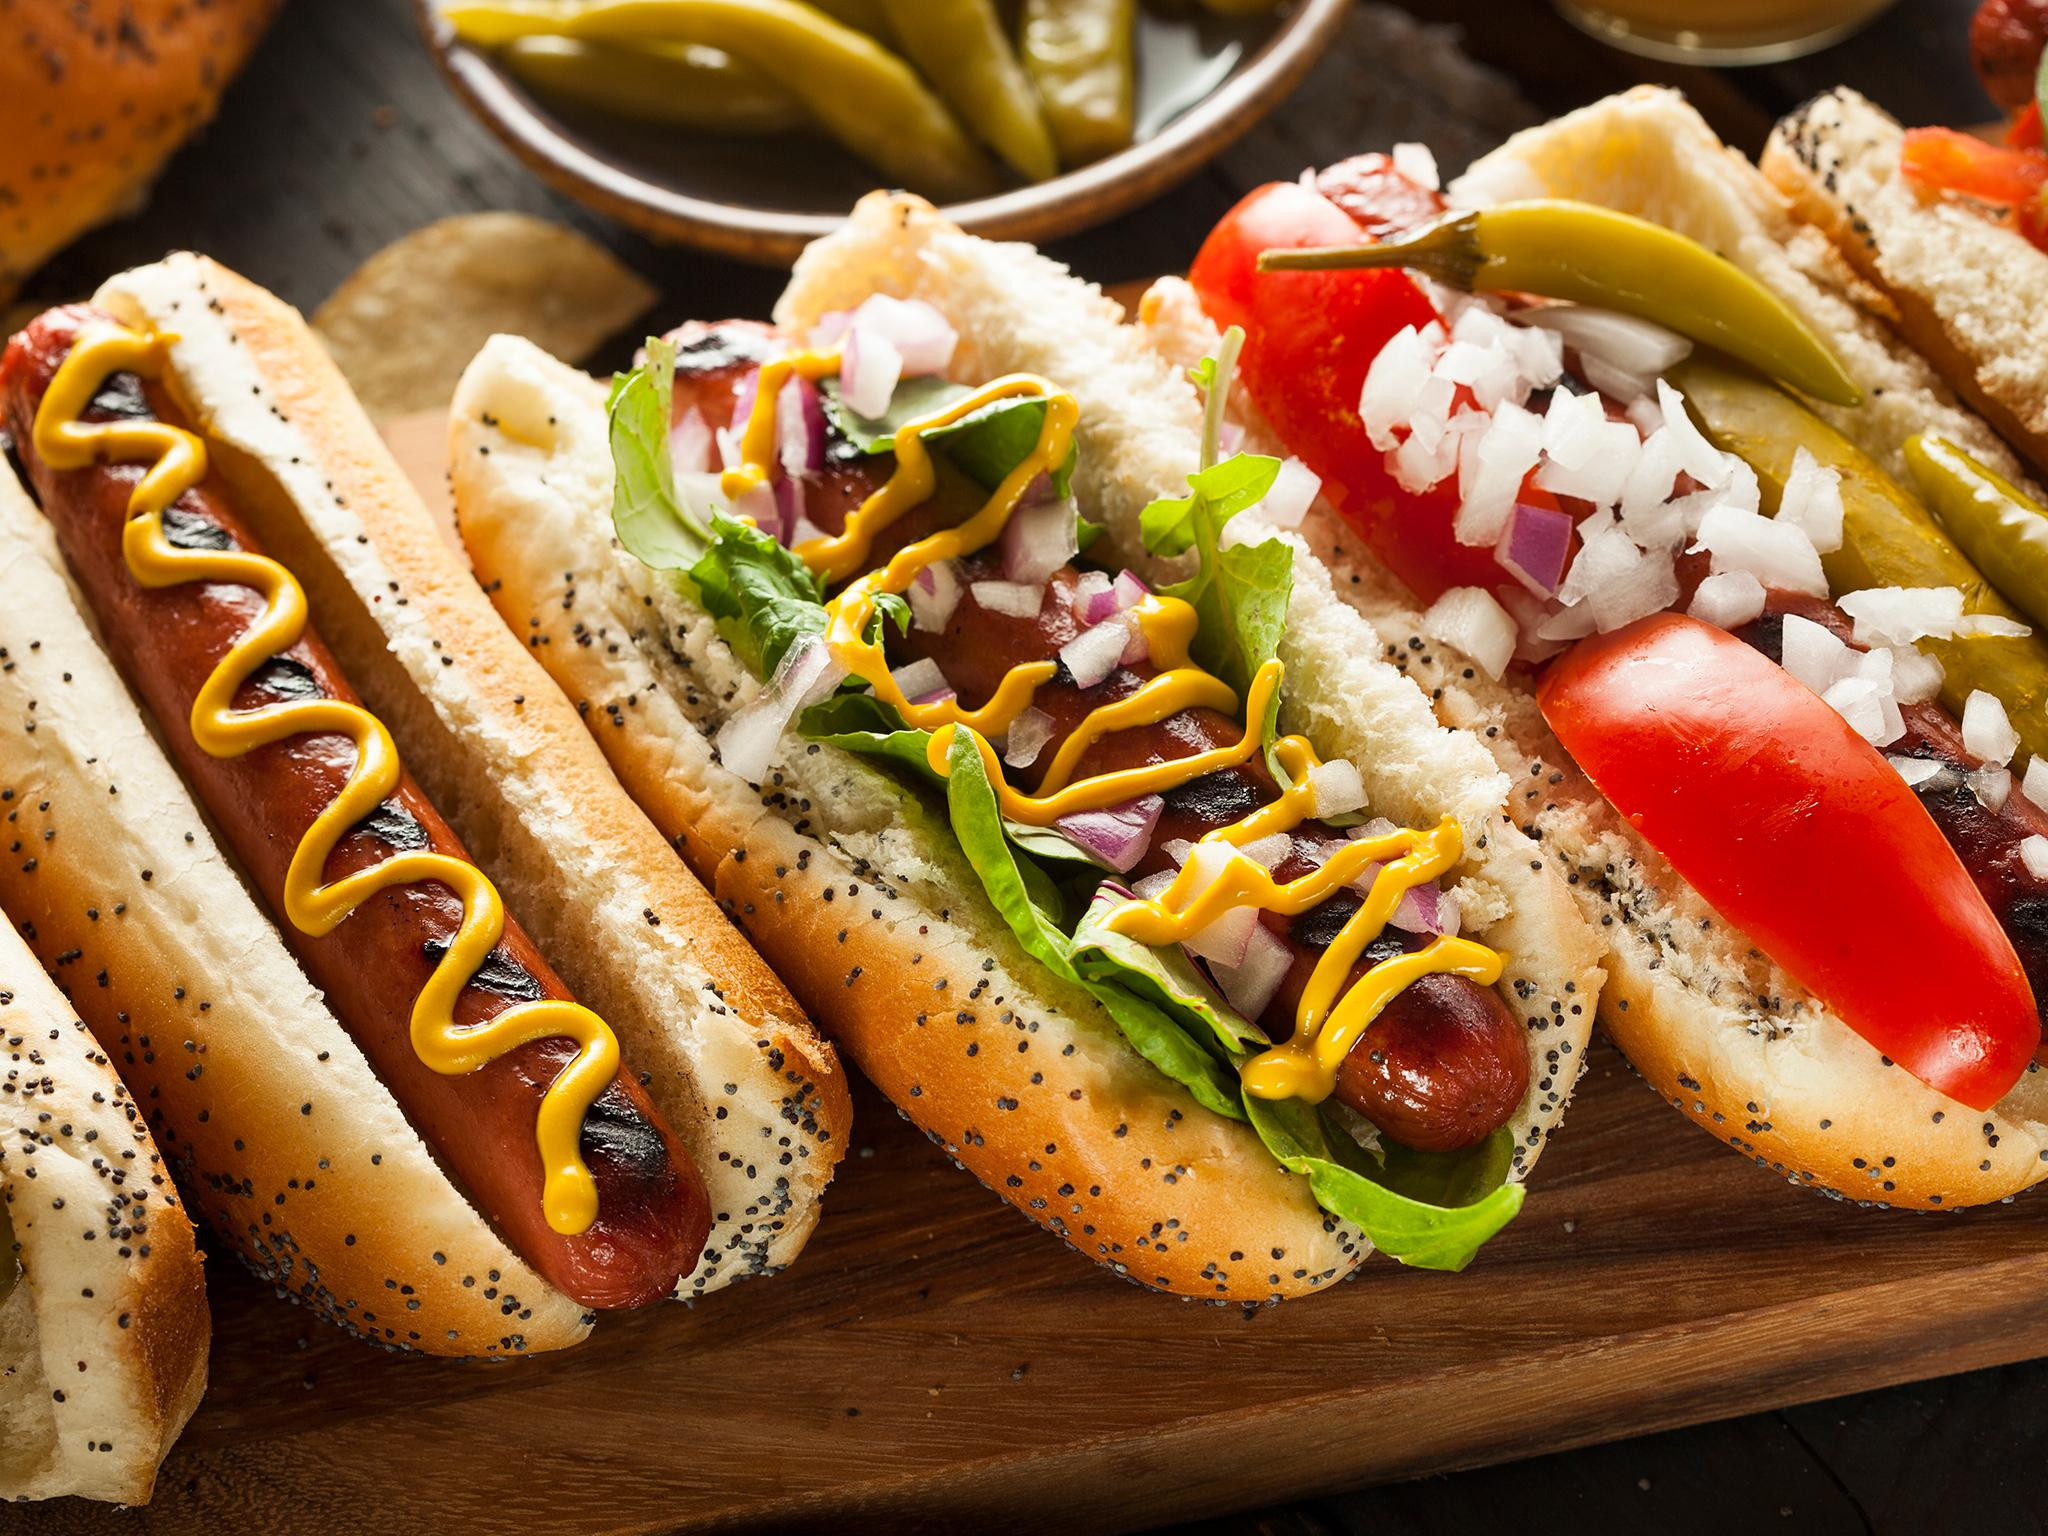 Best Healthy Hot Dogs  Food discoveries How was the hot dog sandwich and